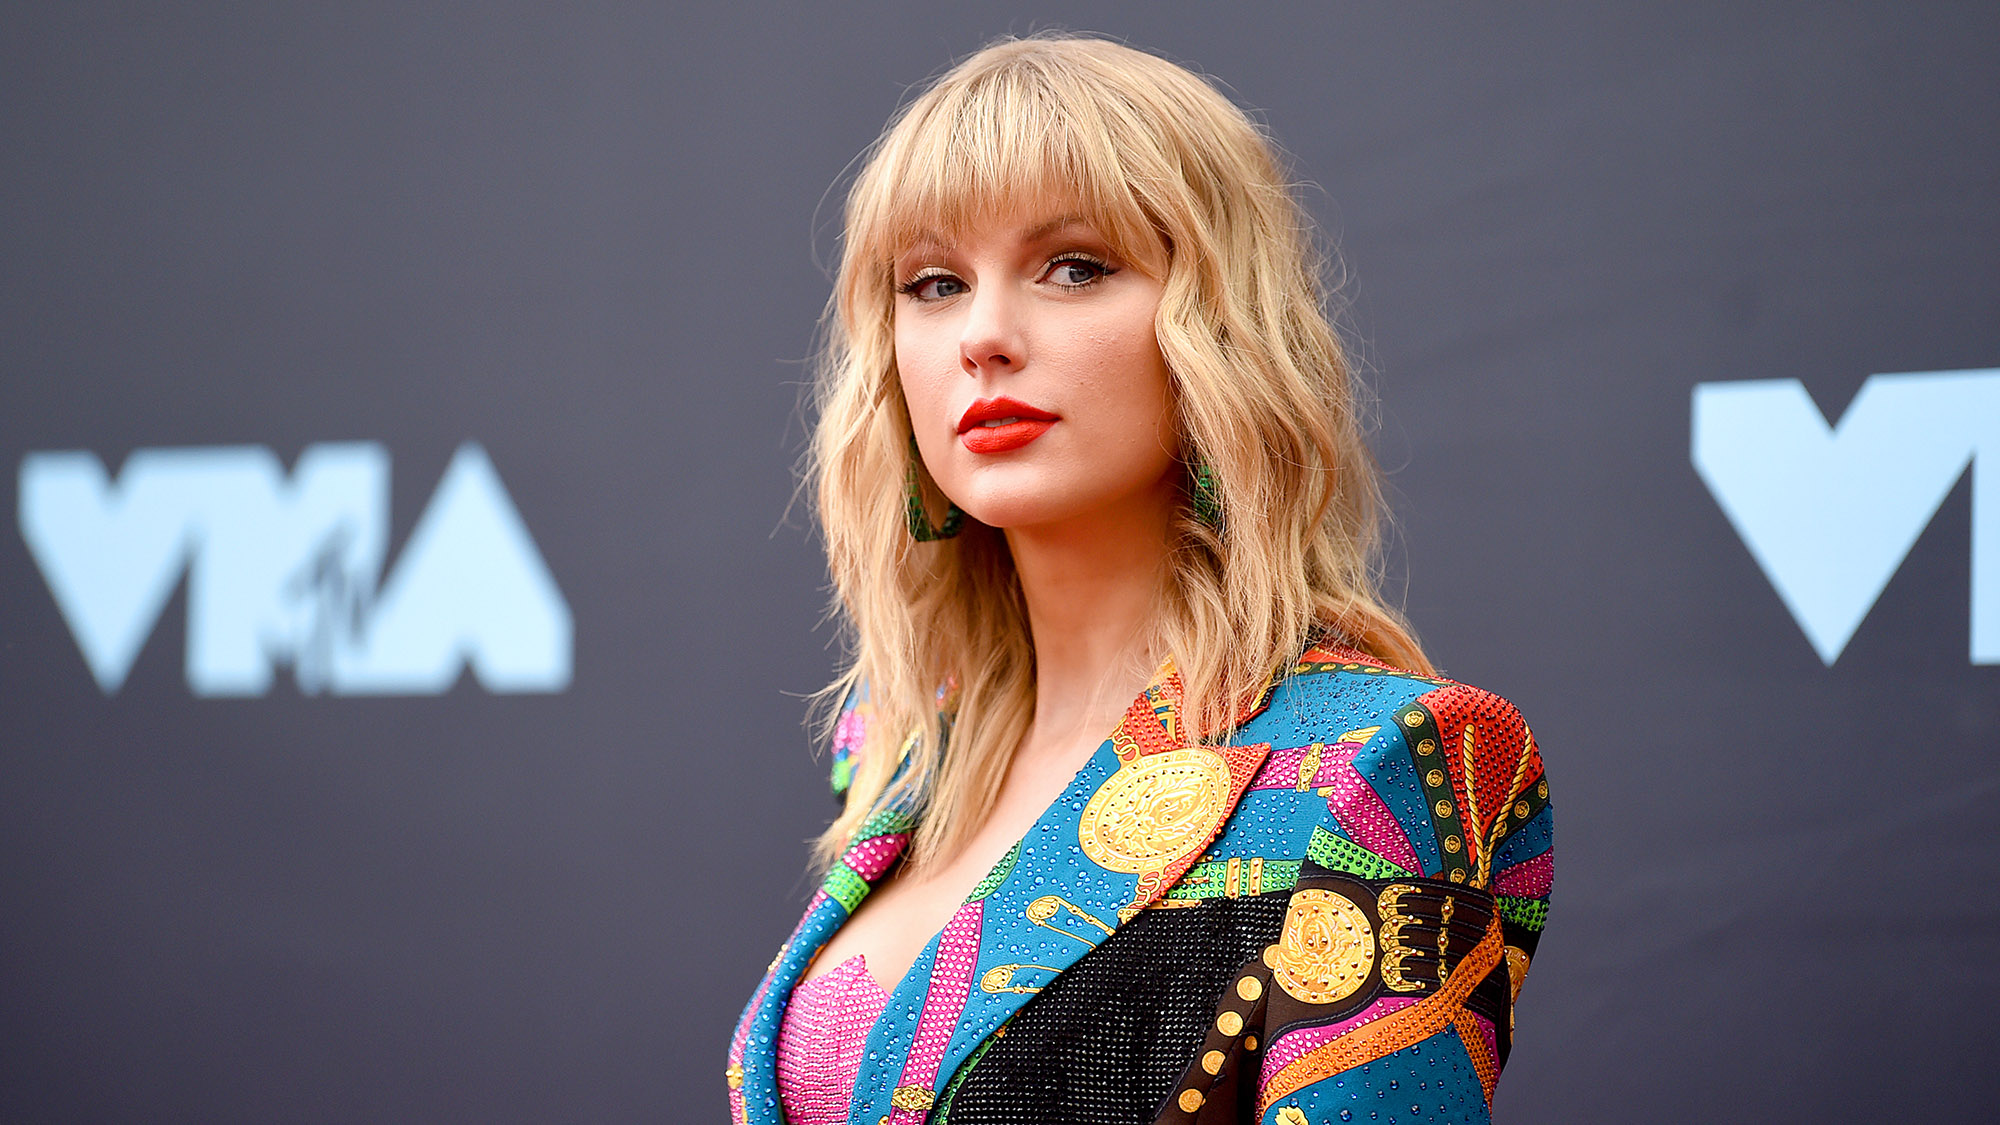 Taylor Swift is back at No. 1 for the third time in less than a year